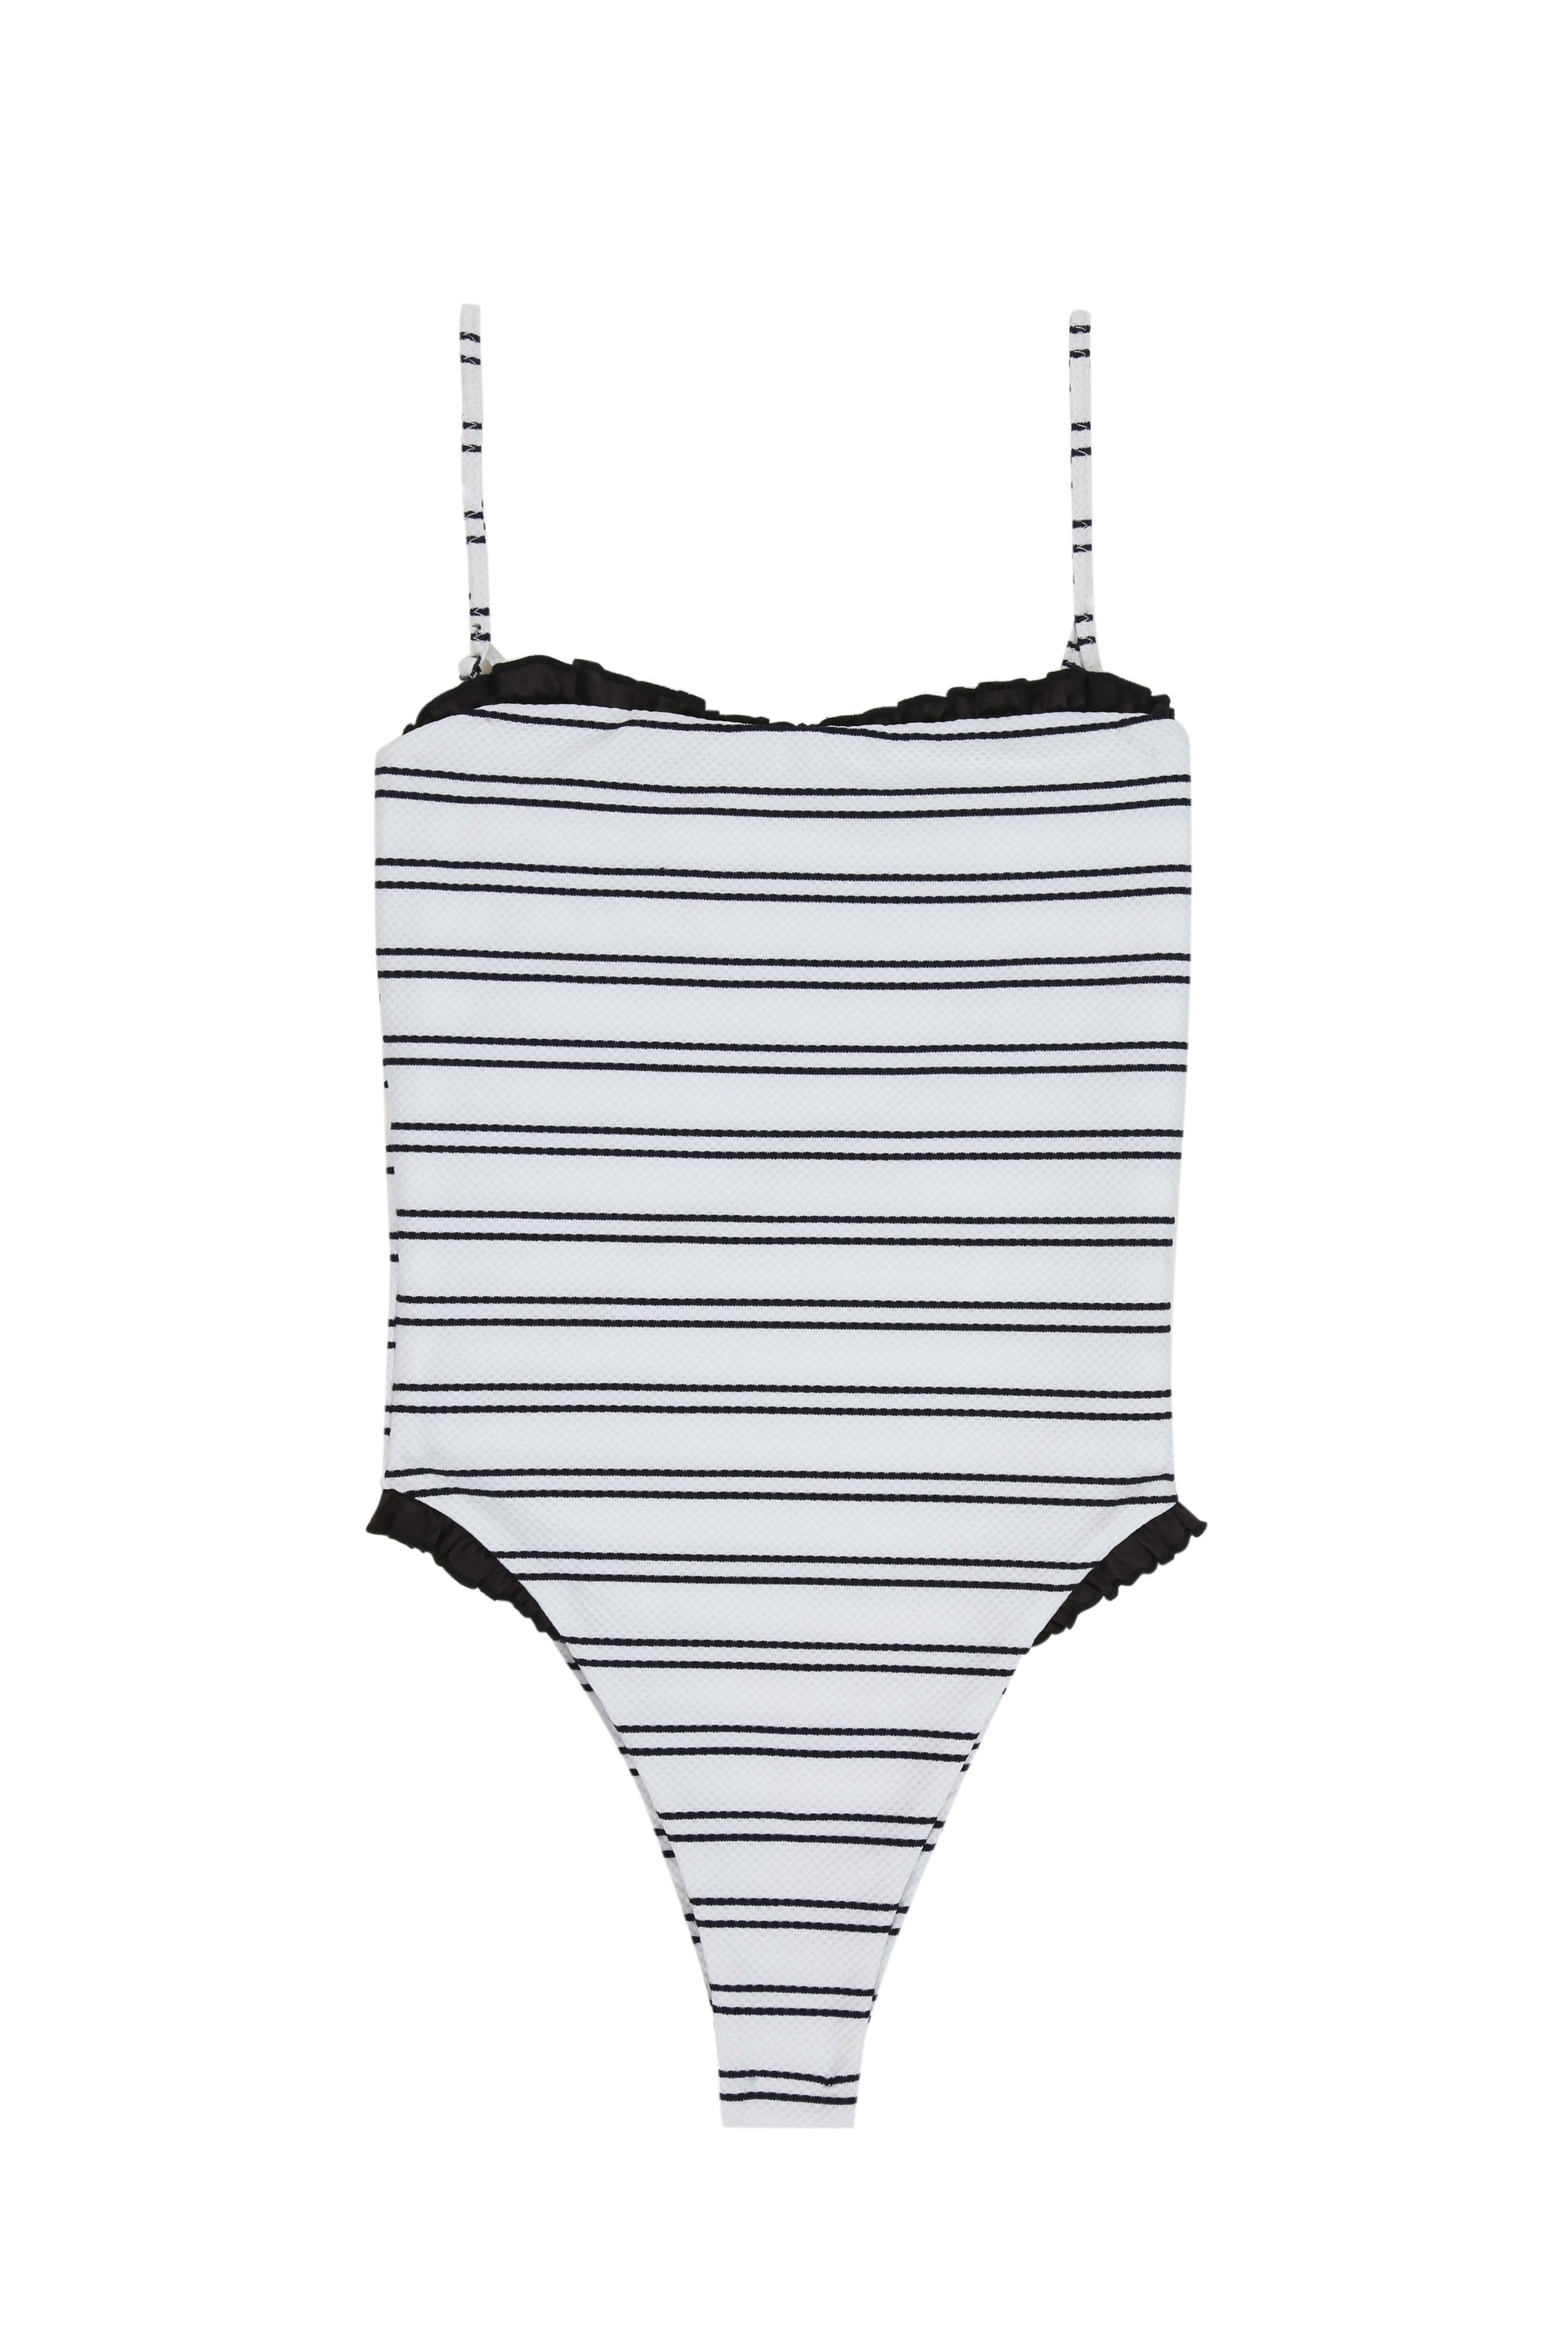 The Pin-Up One Piece (Woven Black & White Stripe)